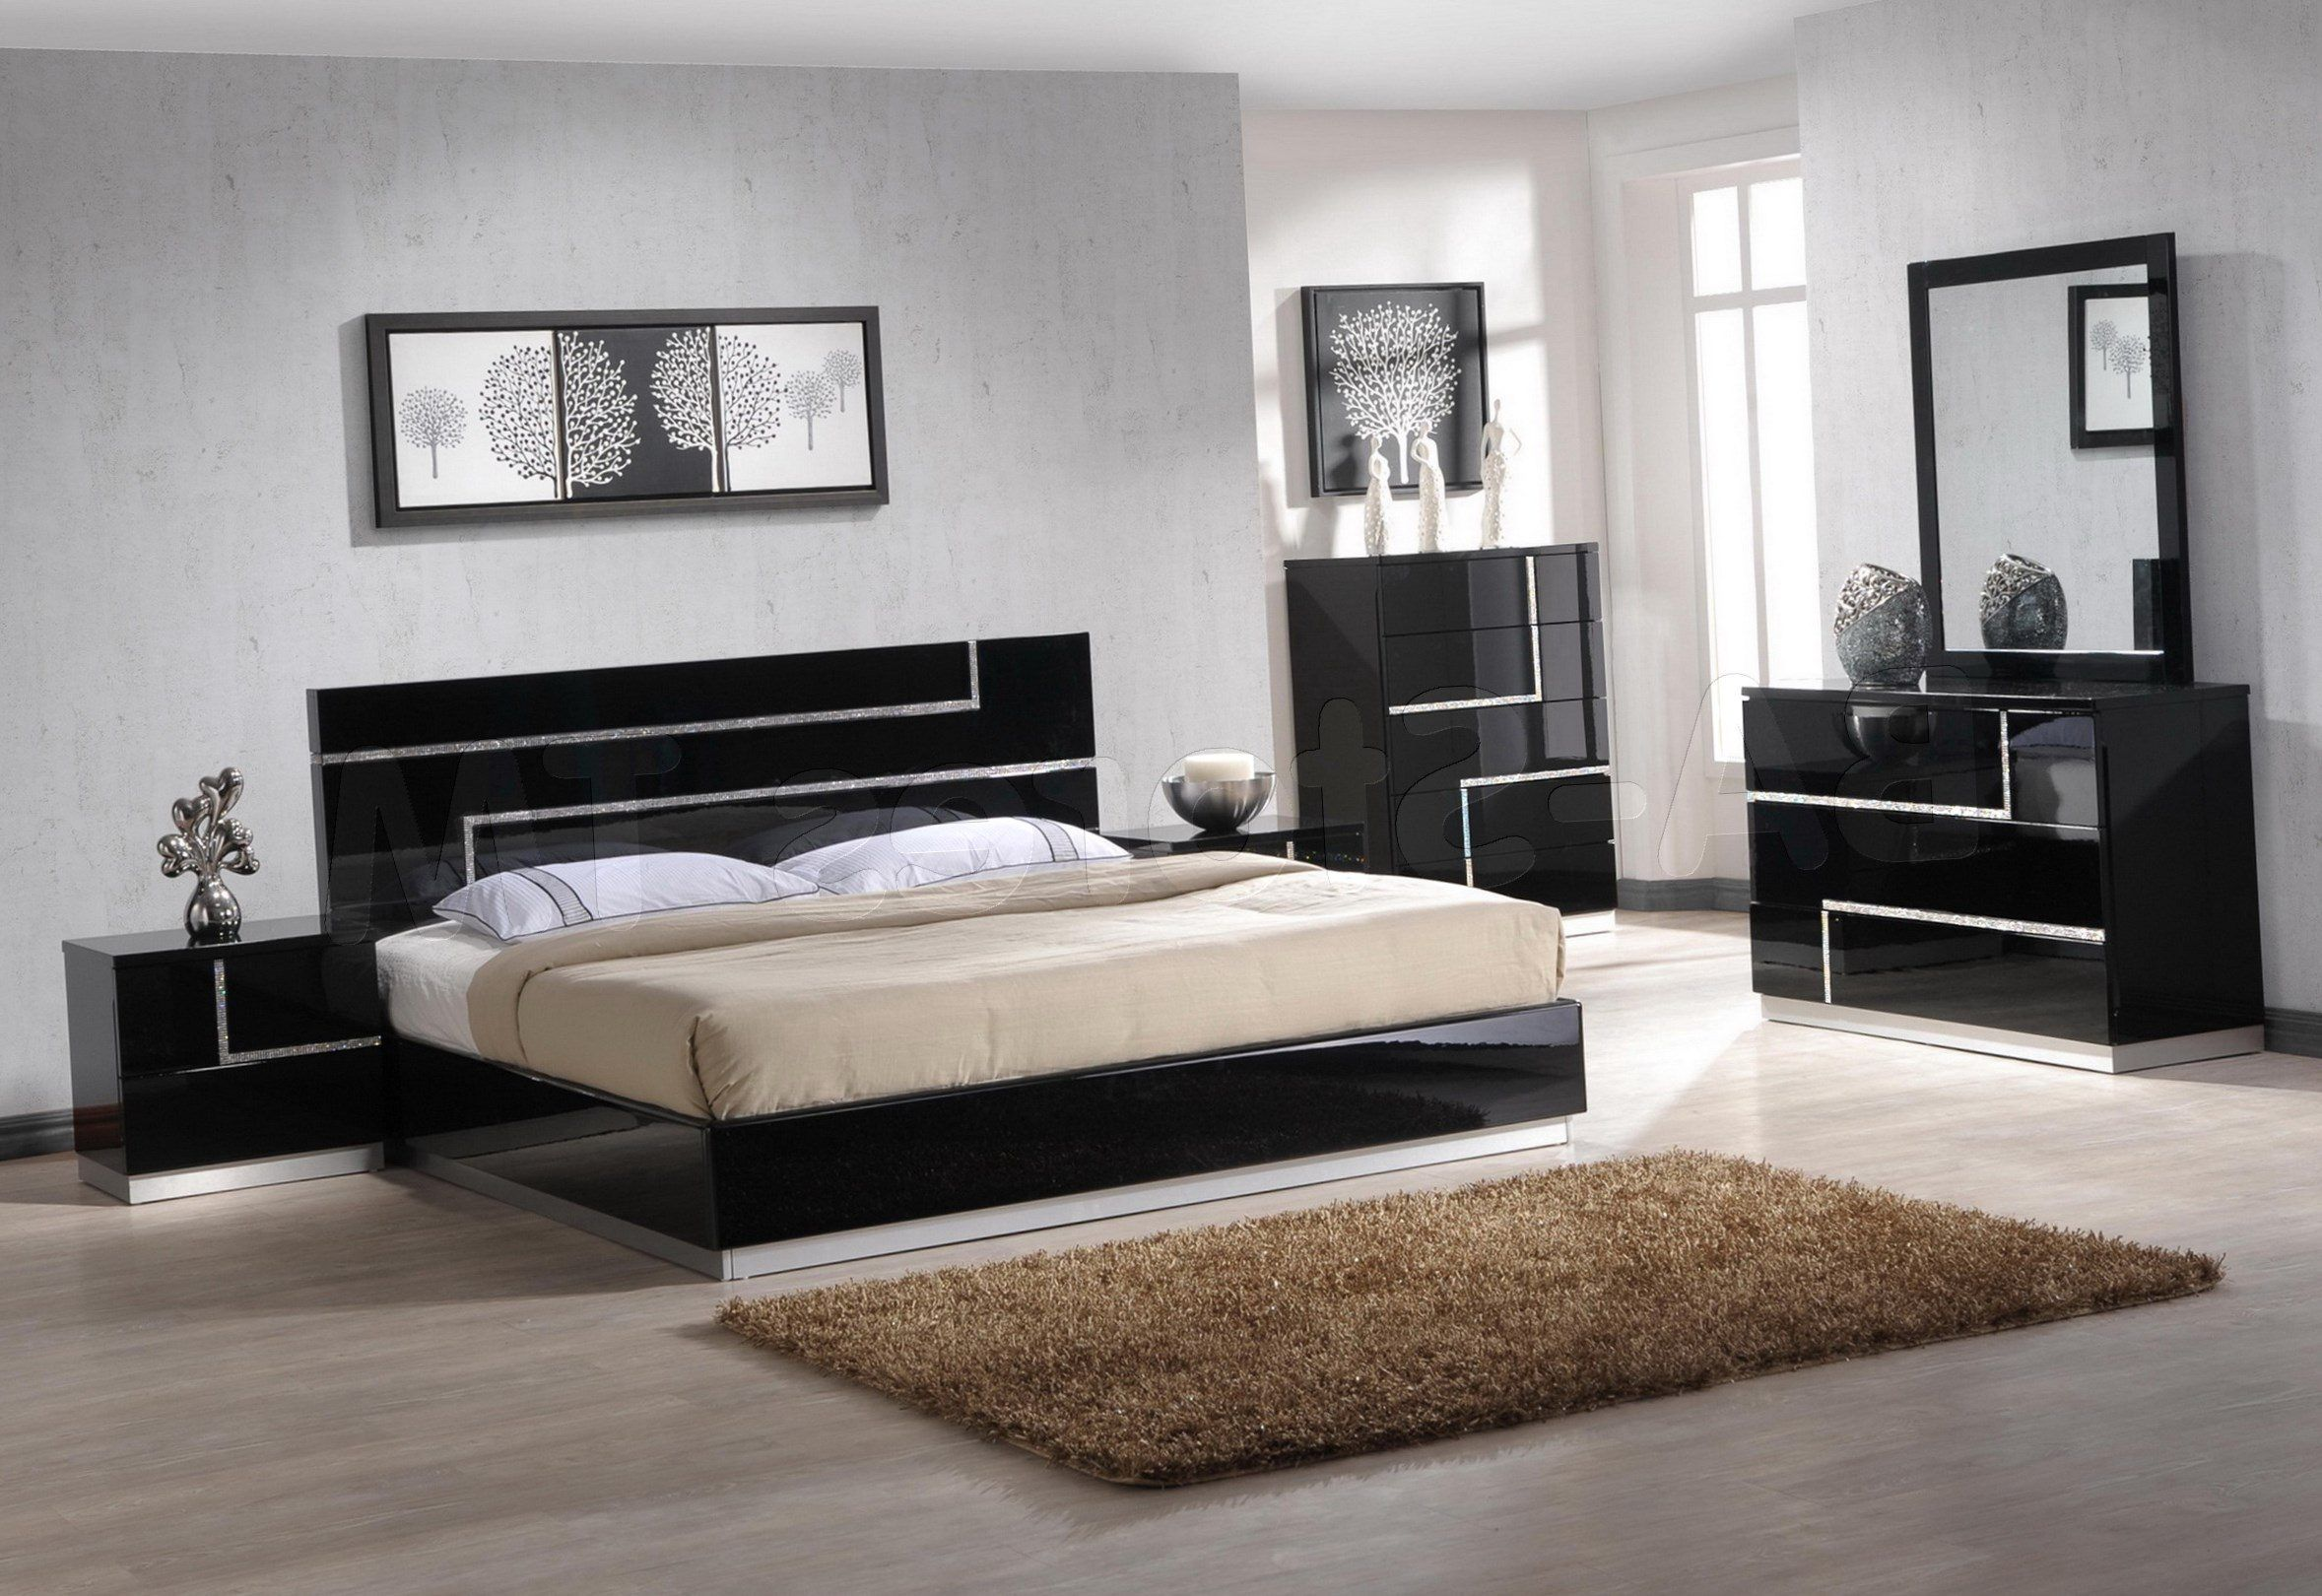 Bedroom Setting Styles Https Bedroom Design Info Style